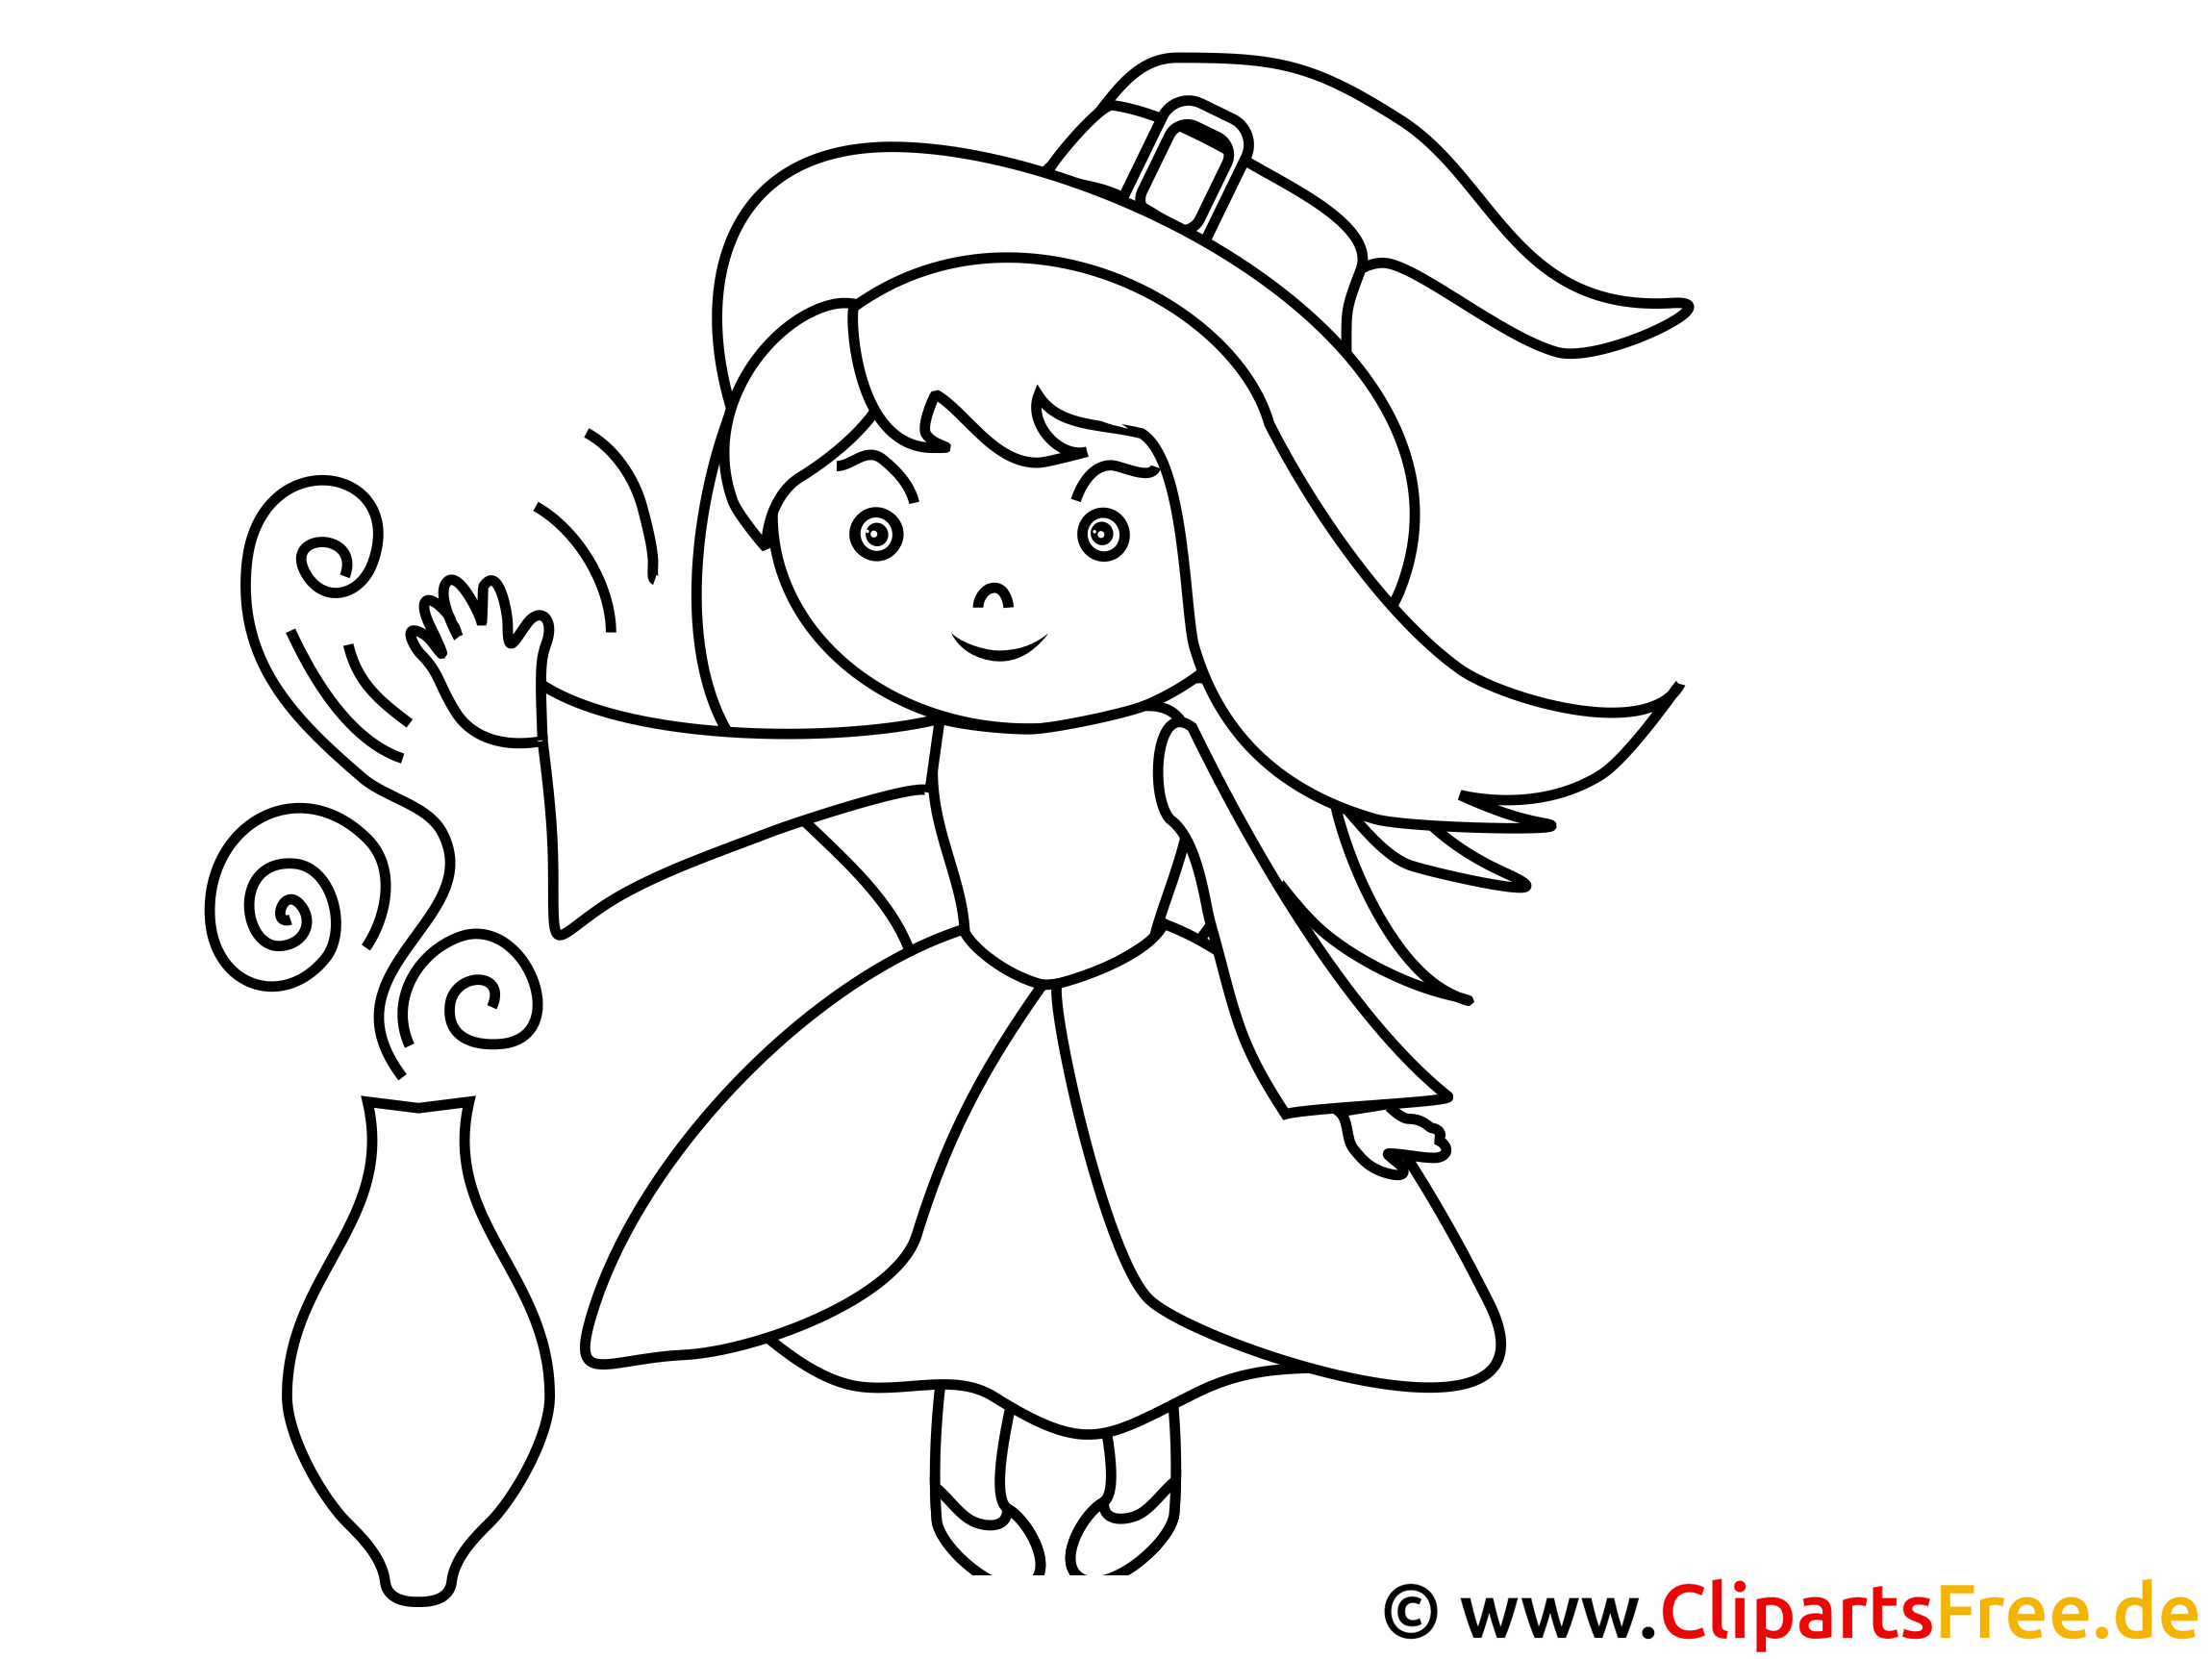 Withcraft Pic for Coloring and Printing